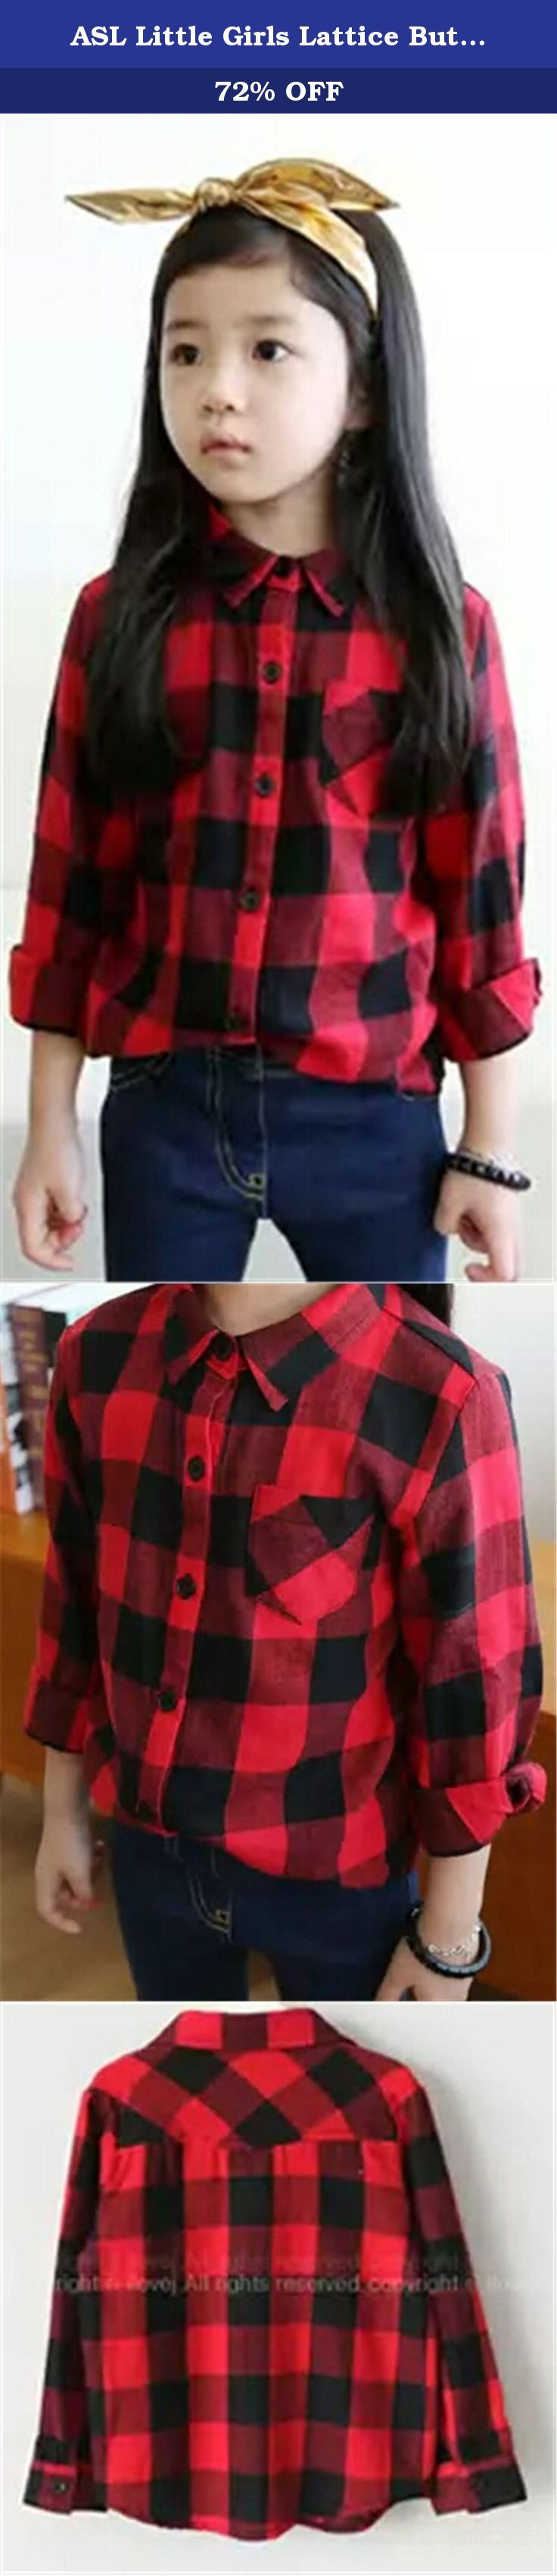 """ASL Little Girls Lattice Button Pocket Lapel Long Sleeve Shirts 6T red. Any problem can contact our customer service, promise to give you satisfied solution. The products from China which is good quality and good price. Pay attention to our Asian size which is much smaller than US size, you can contact us to get help for your right size. Material: The detail measurement is as follow: Cotton Size details: US 2T: Length:15.35""""(39cm) Bust:12.99""""(33cm) Sleeve:13.78""""(35cm); US 3T:..."""